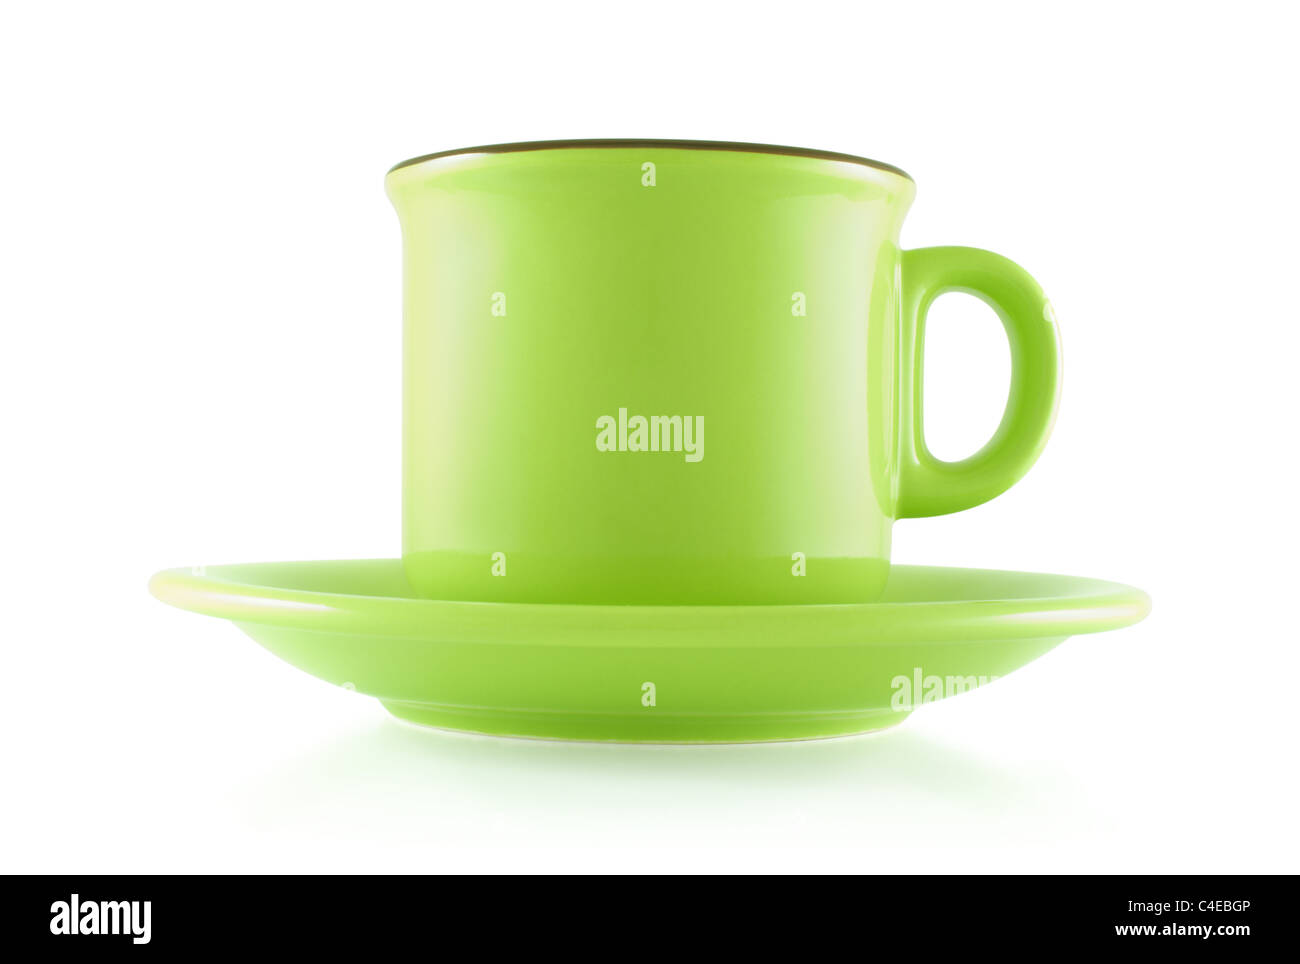 Tea coffee cup on white background - Stock Image